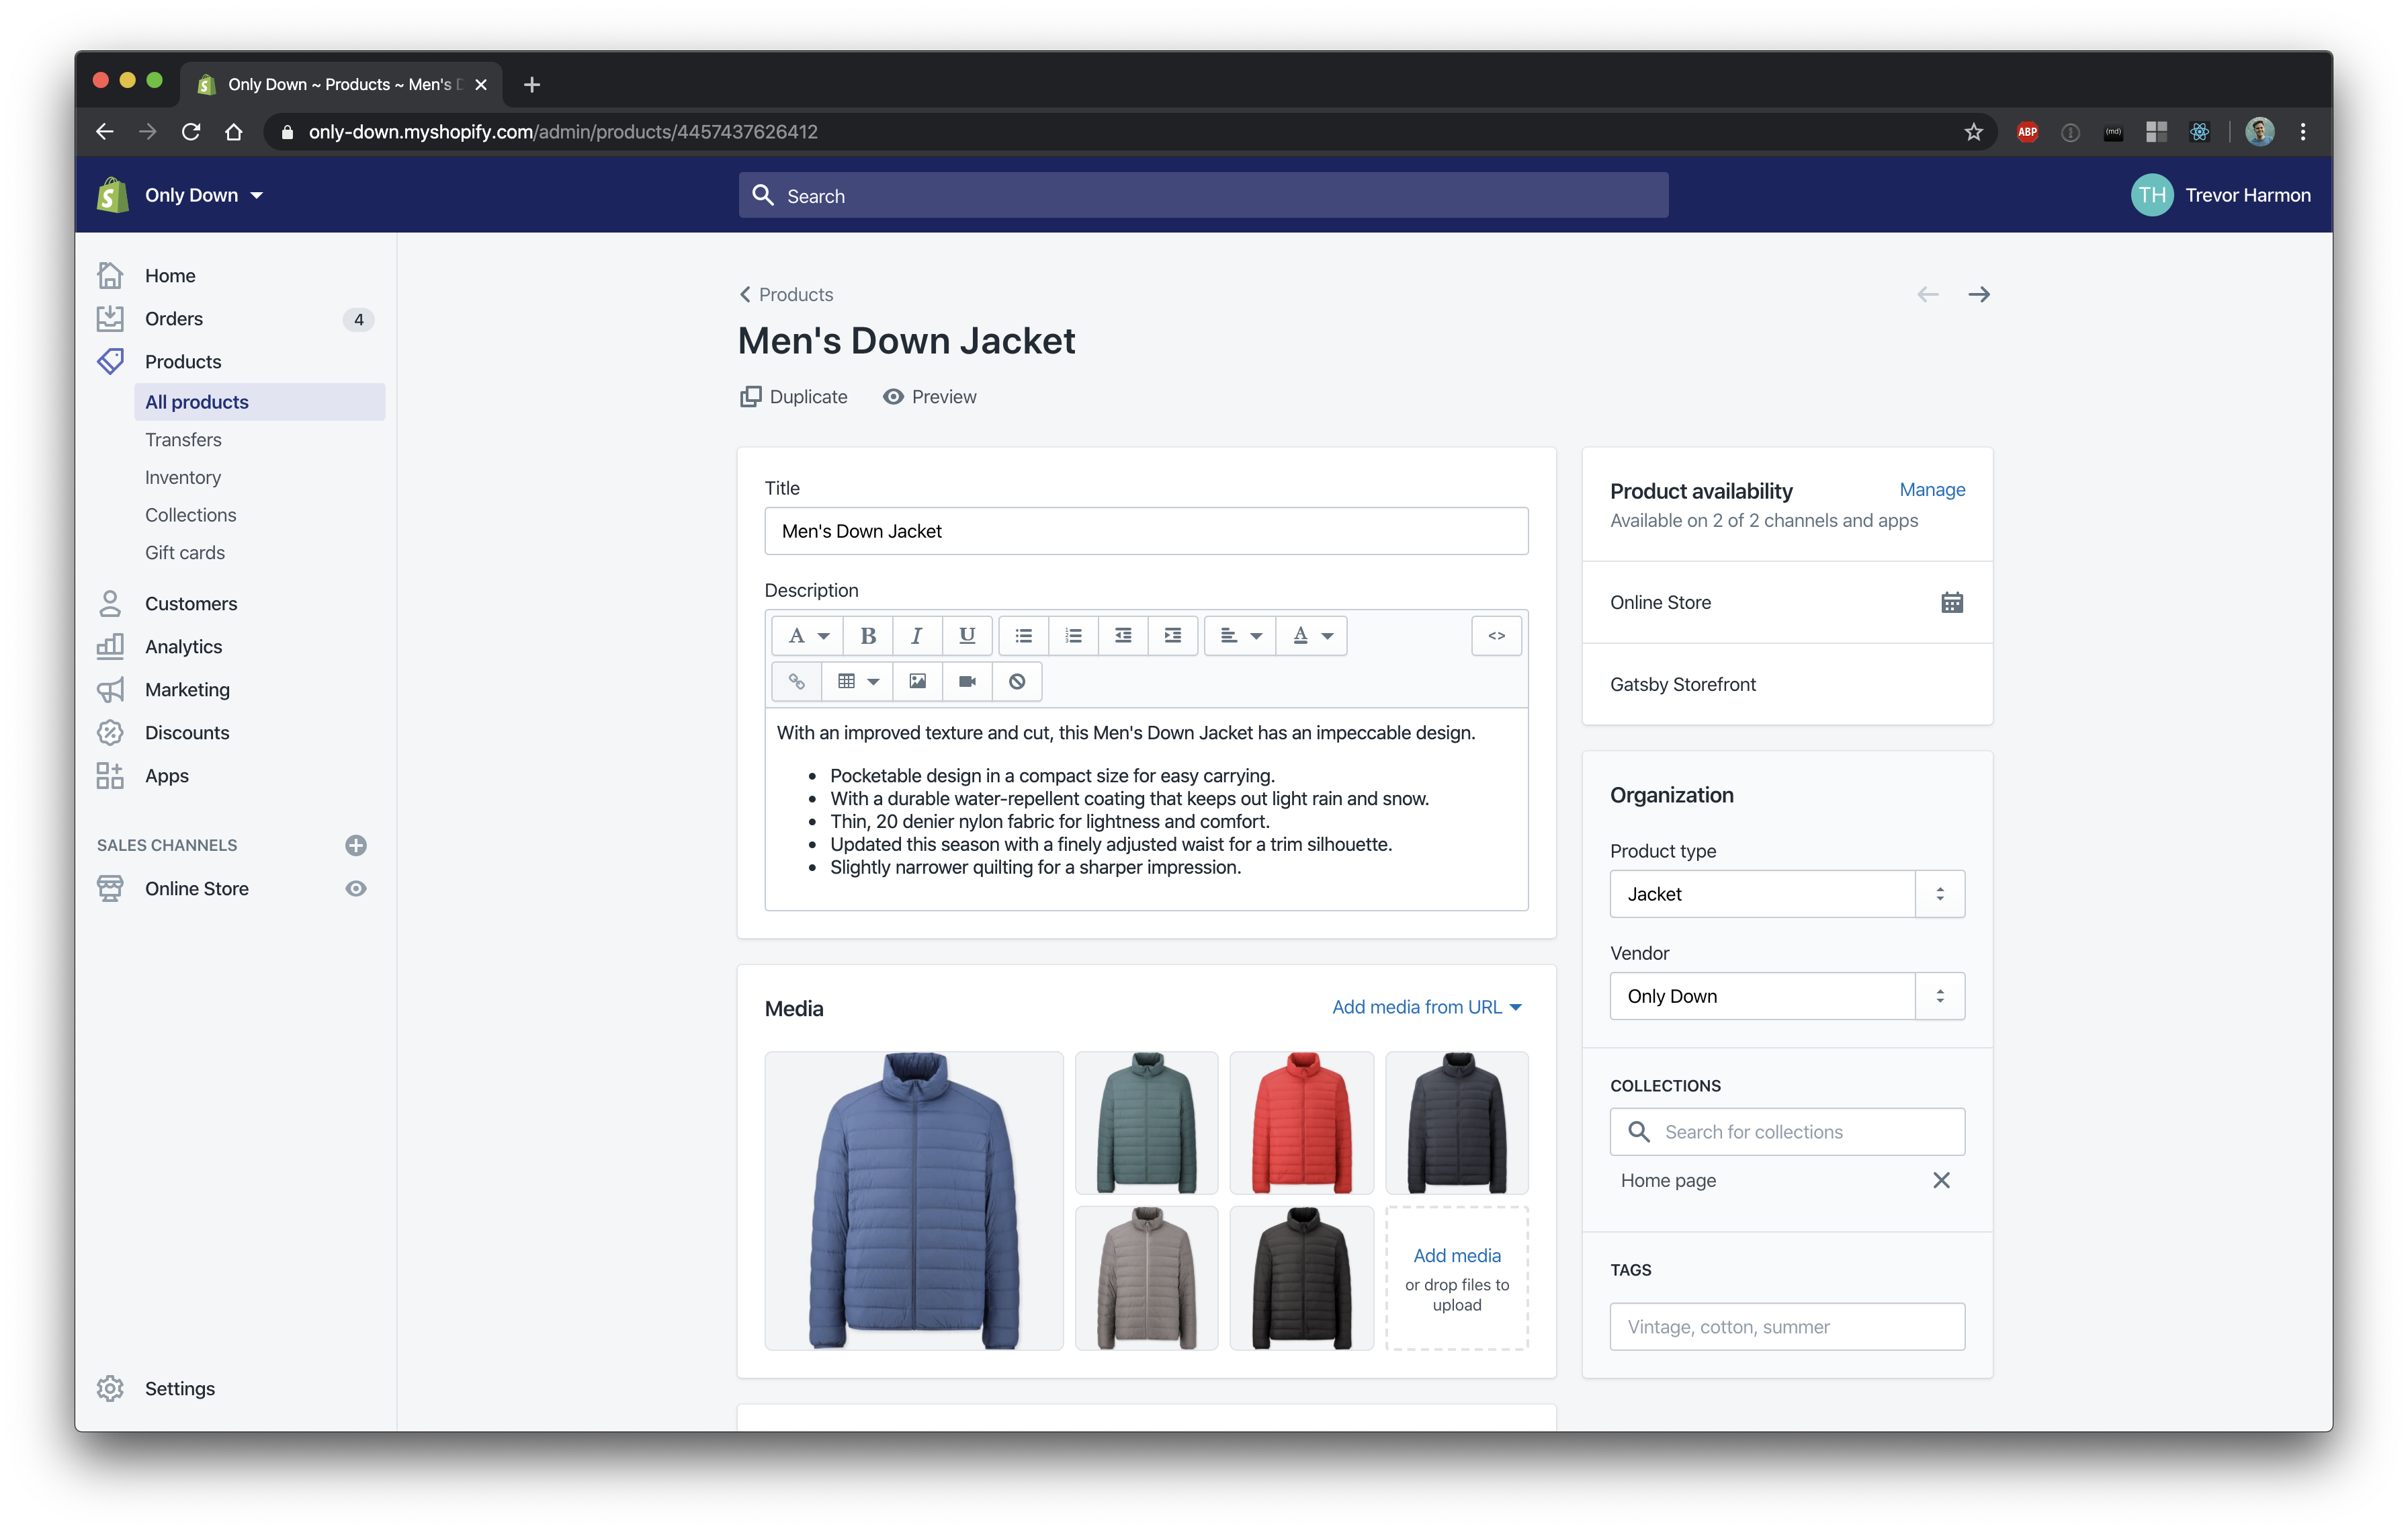 A screenshot of the Shopify product detail page showing a Men's Down Jacket with its description and photos